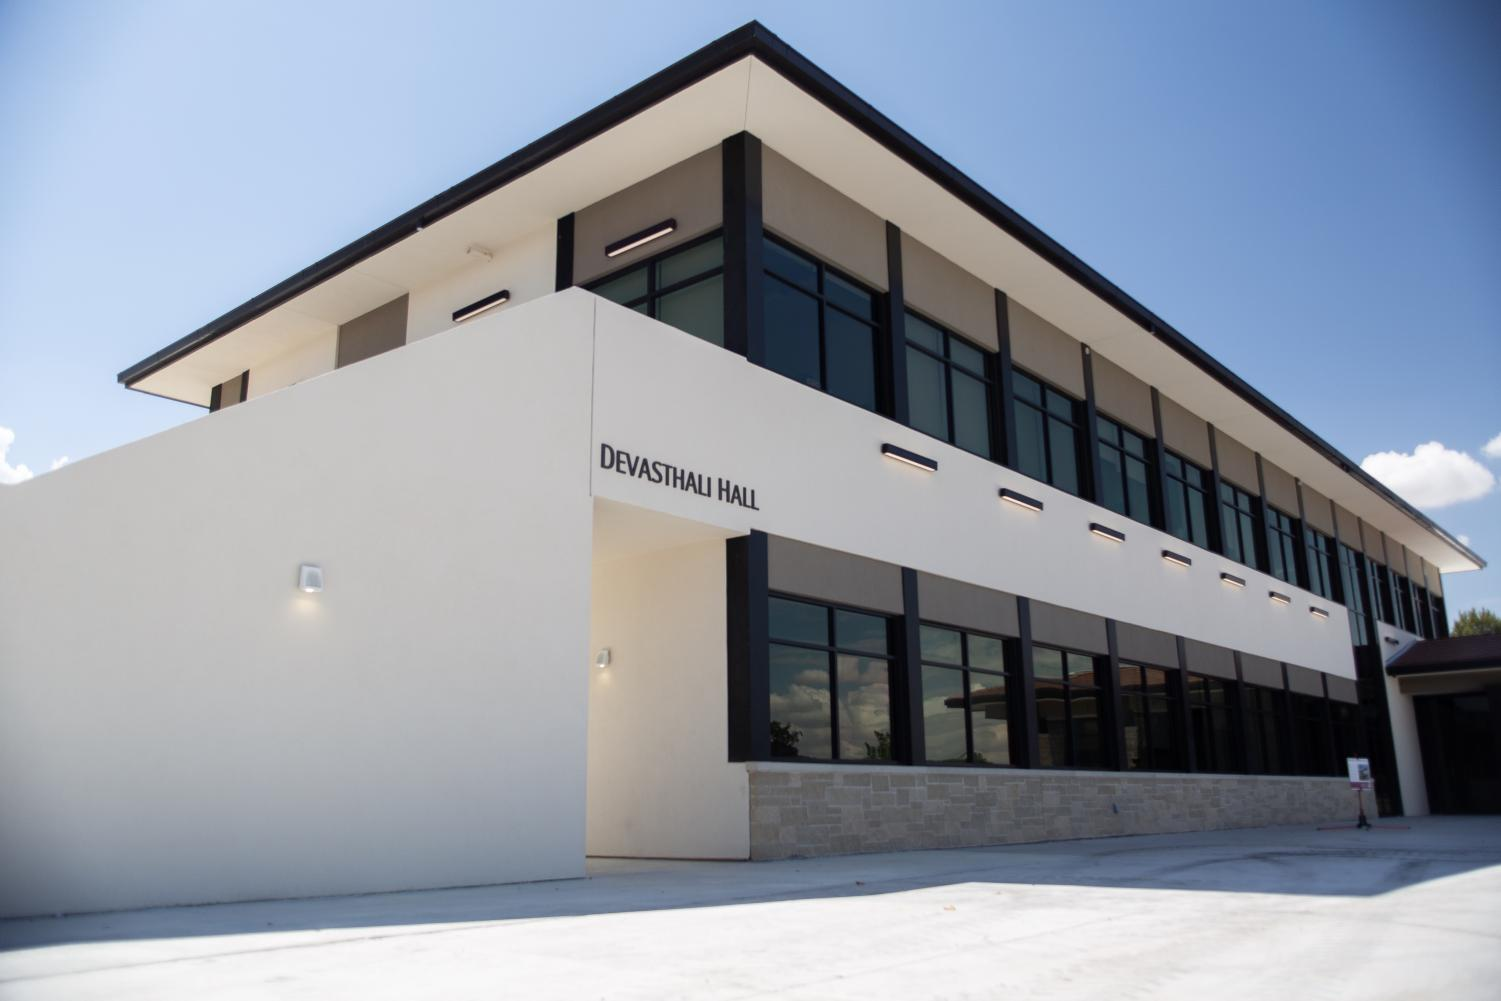 The Devasthali name will remain on the new art building for many years to come, in recognition of  the patrons who helped make the vision a reality.